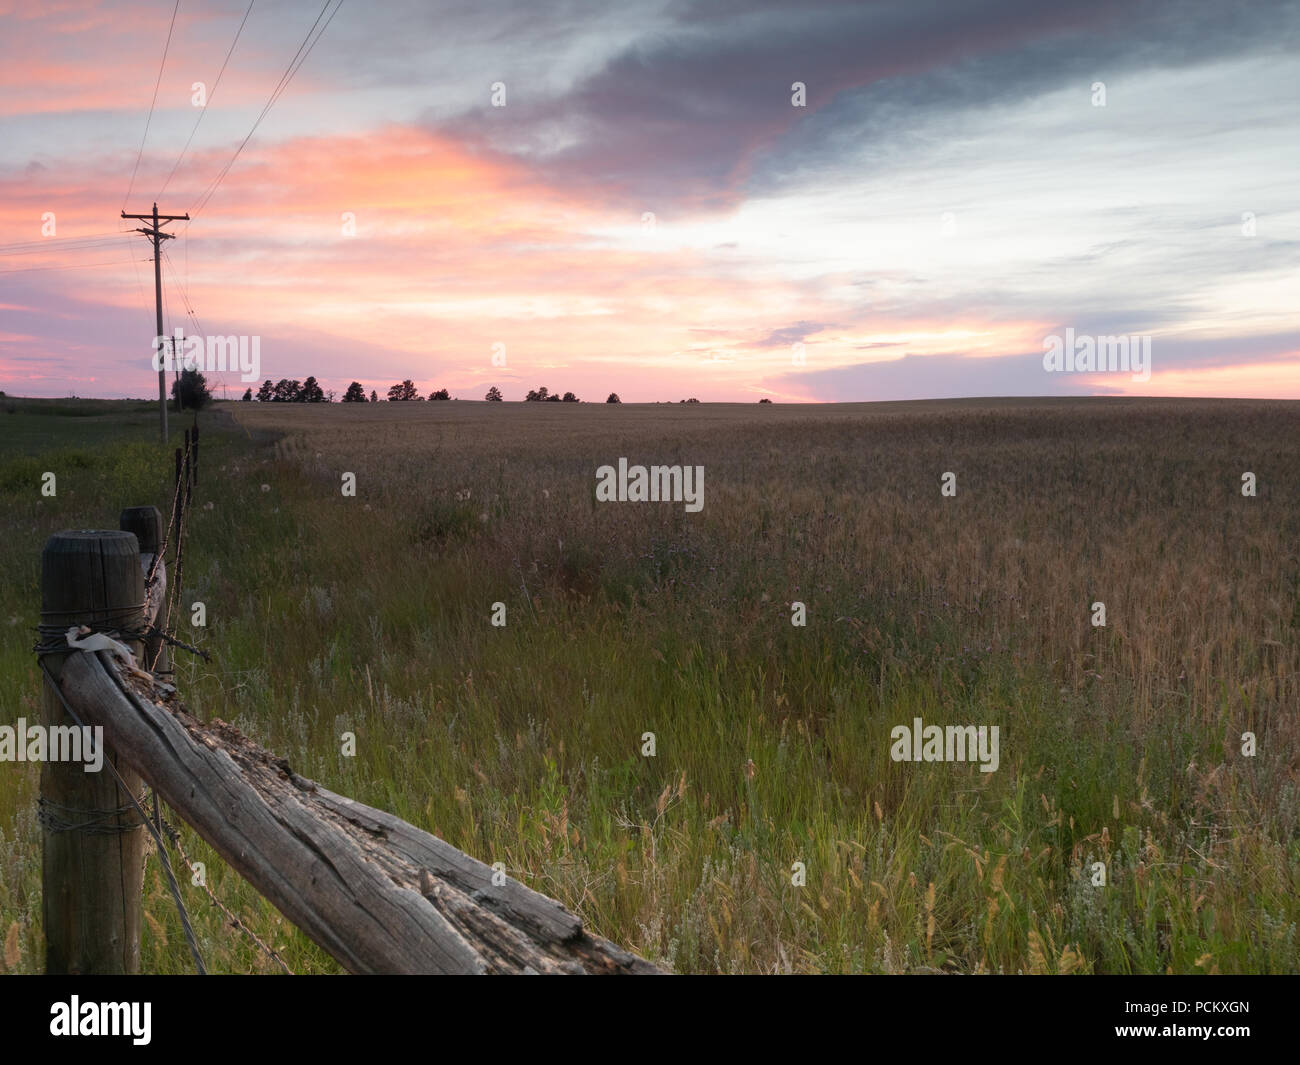 Picturesque fence of poles 73